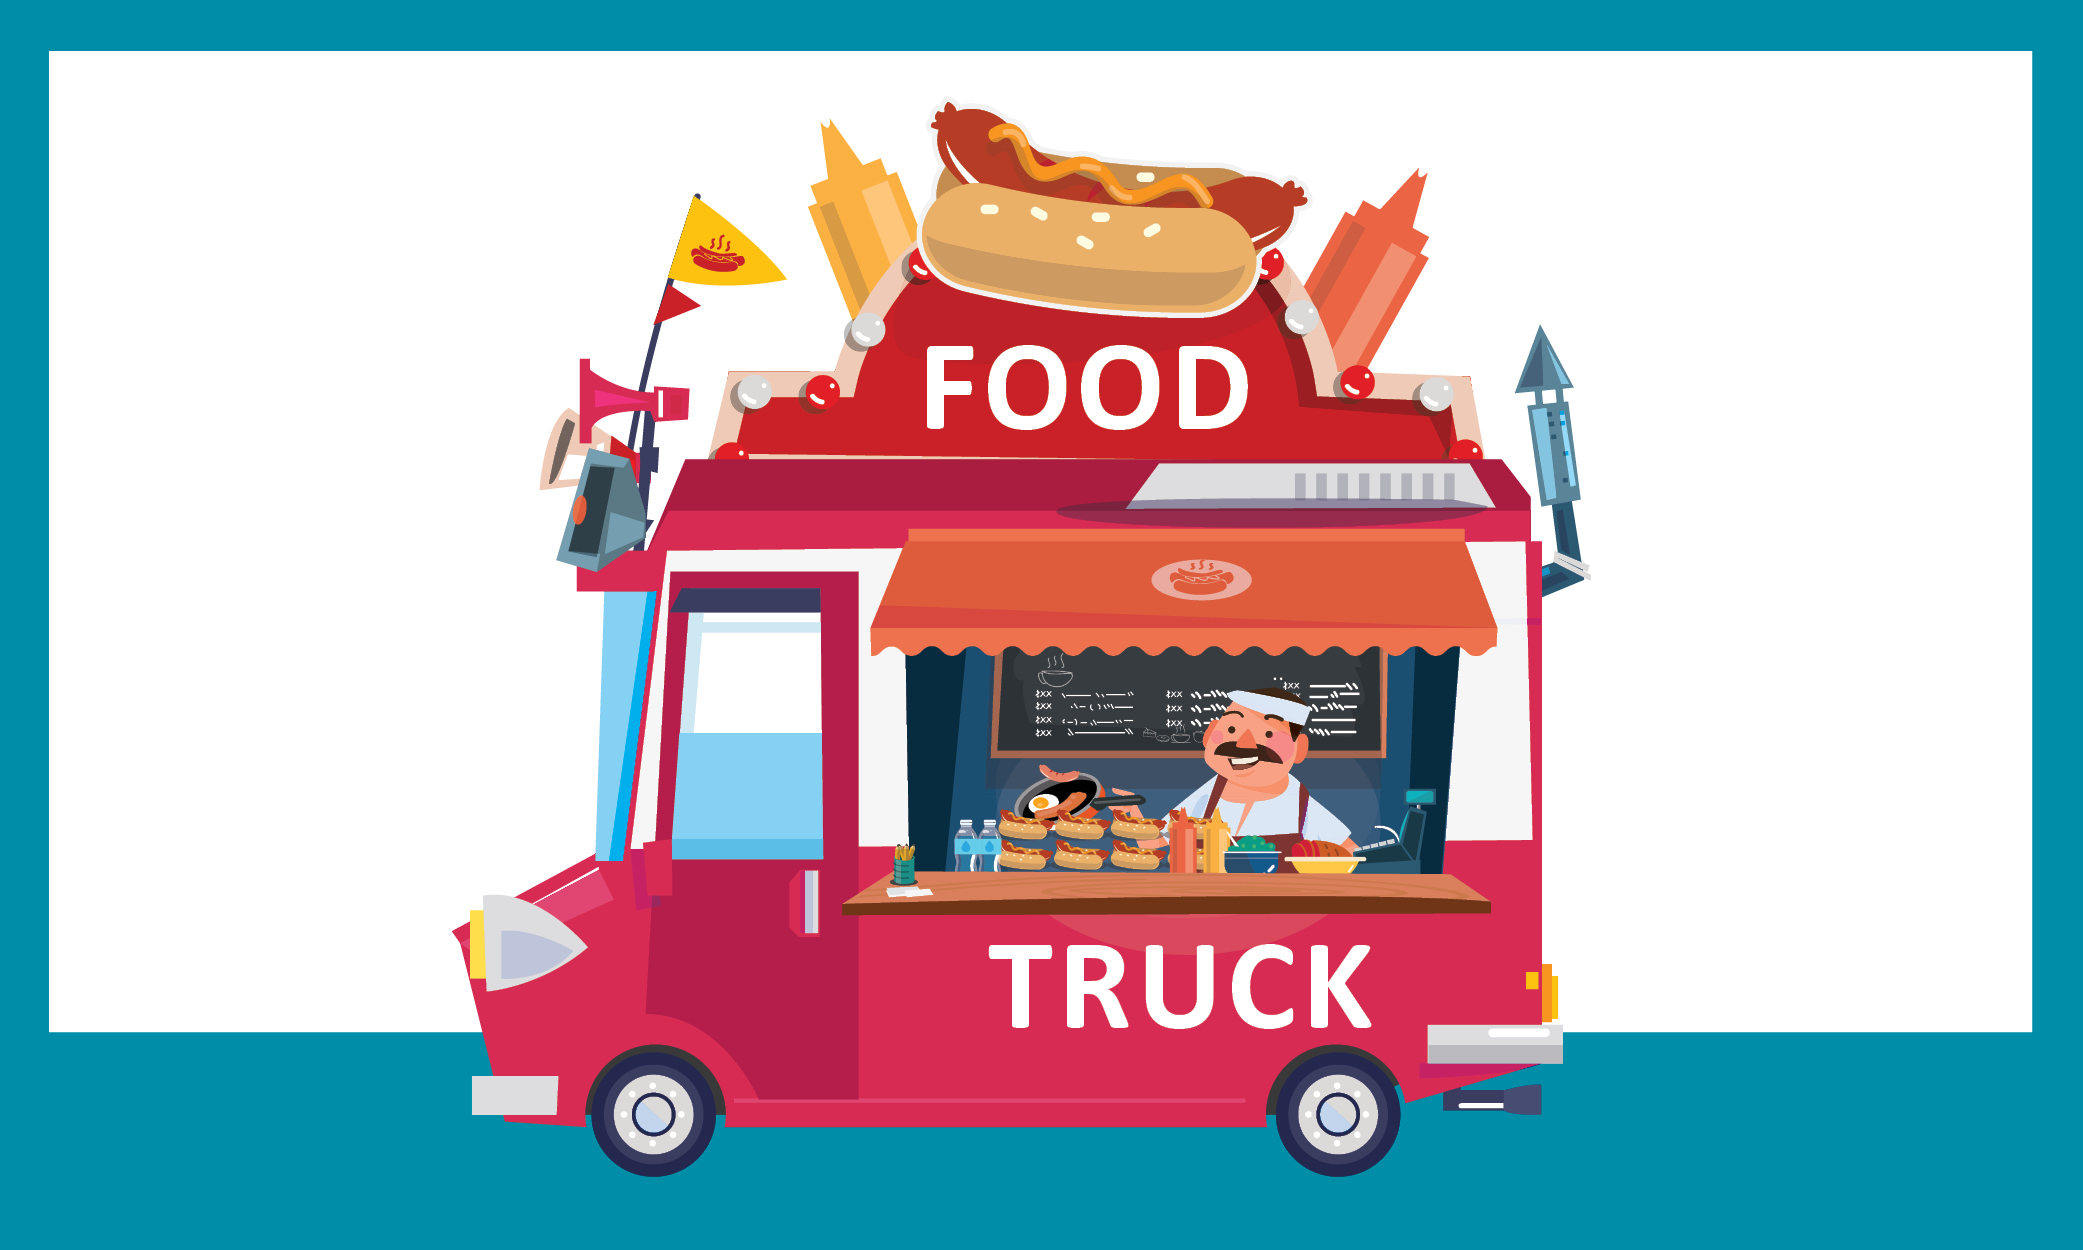 Graphic of a food truck